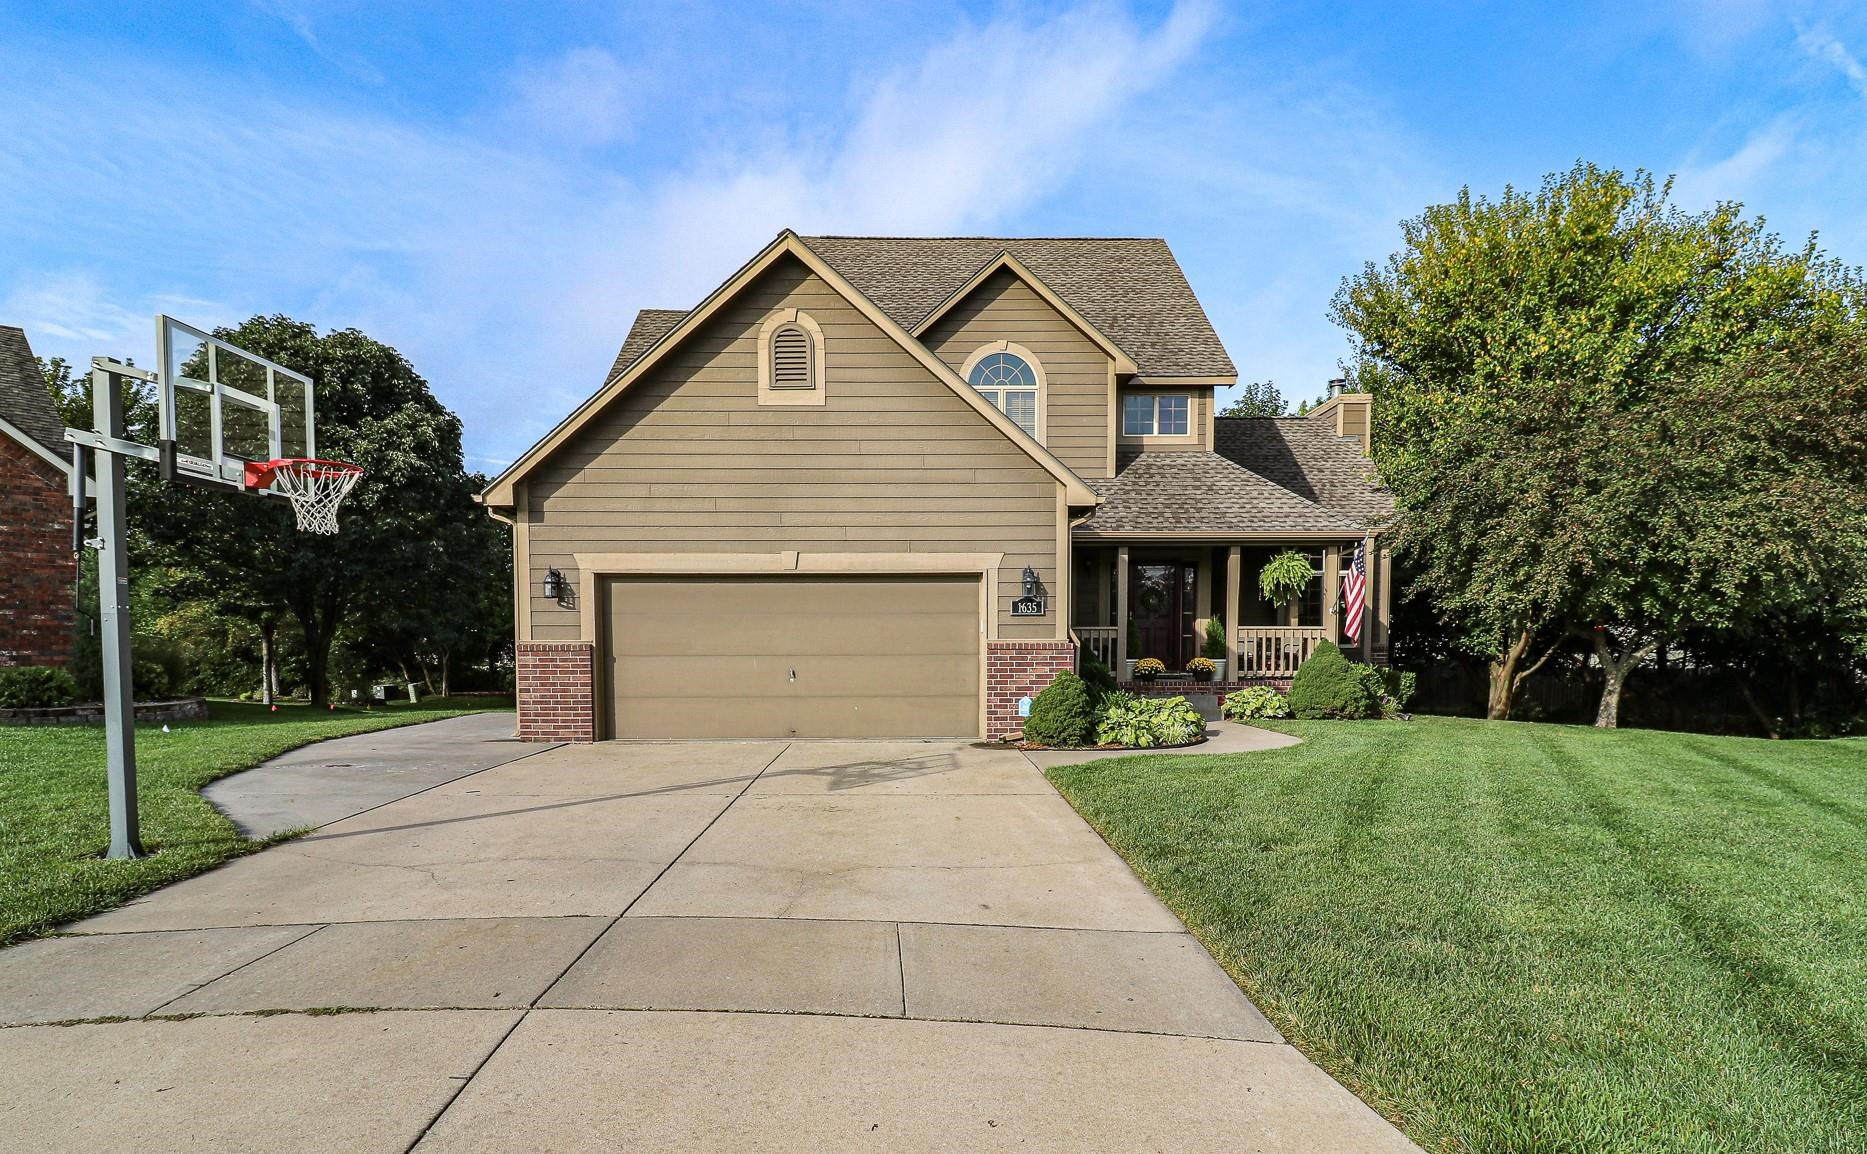 Welcome to this beautiful 4 bedroom, 3.5 bath home nestled at the end of the cul -de-sac in the desi